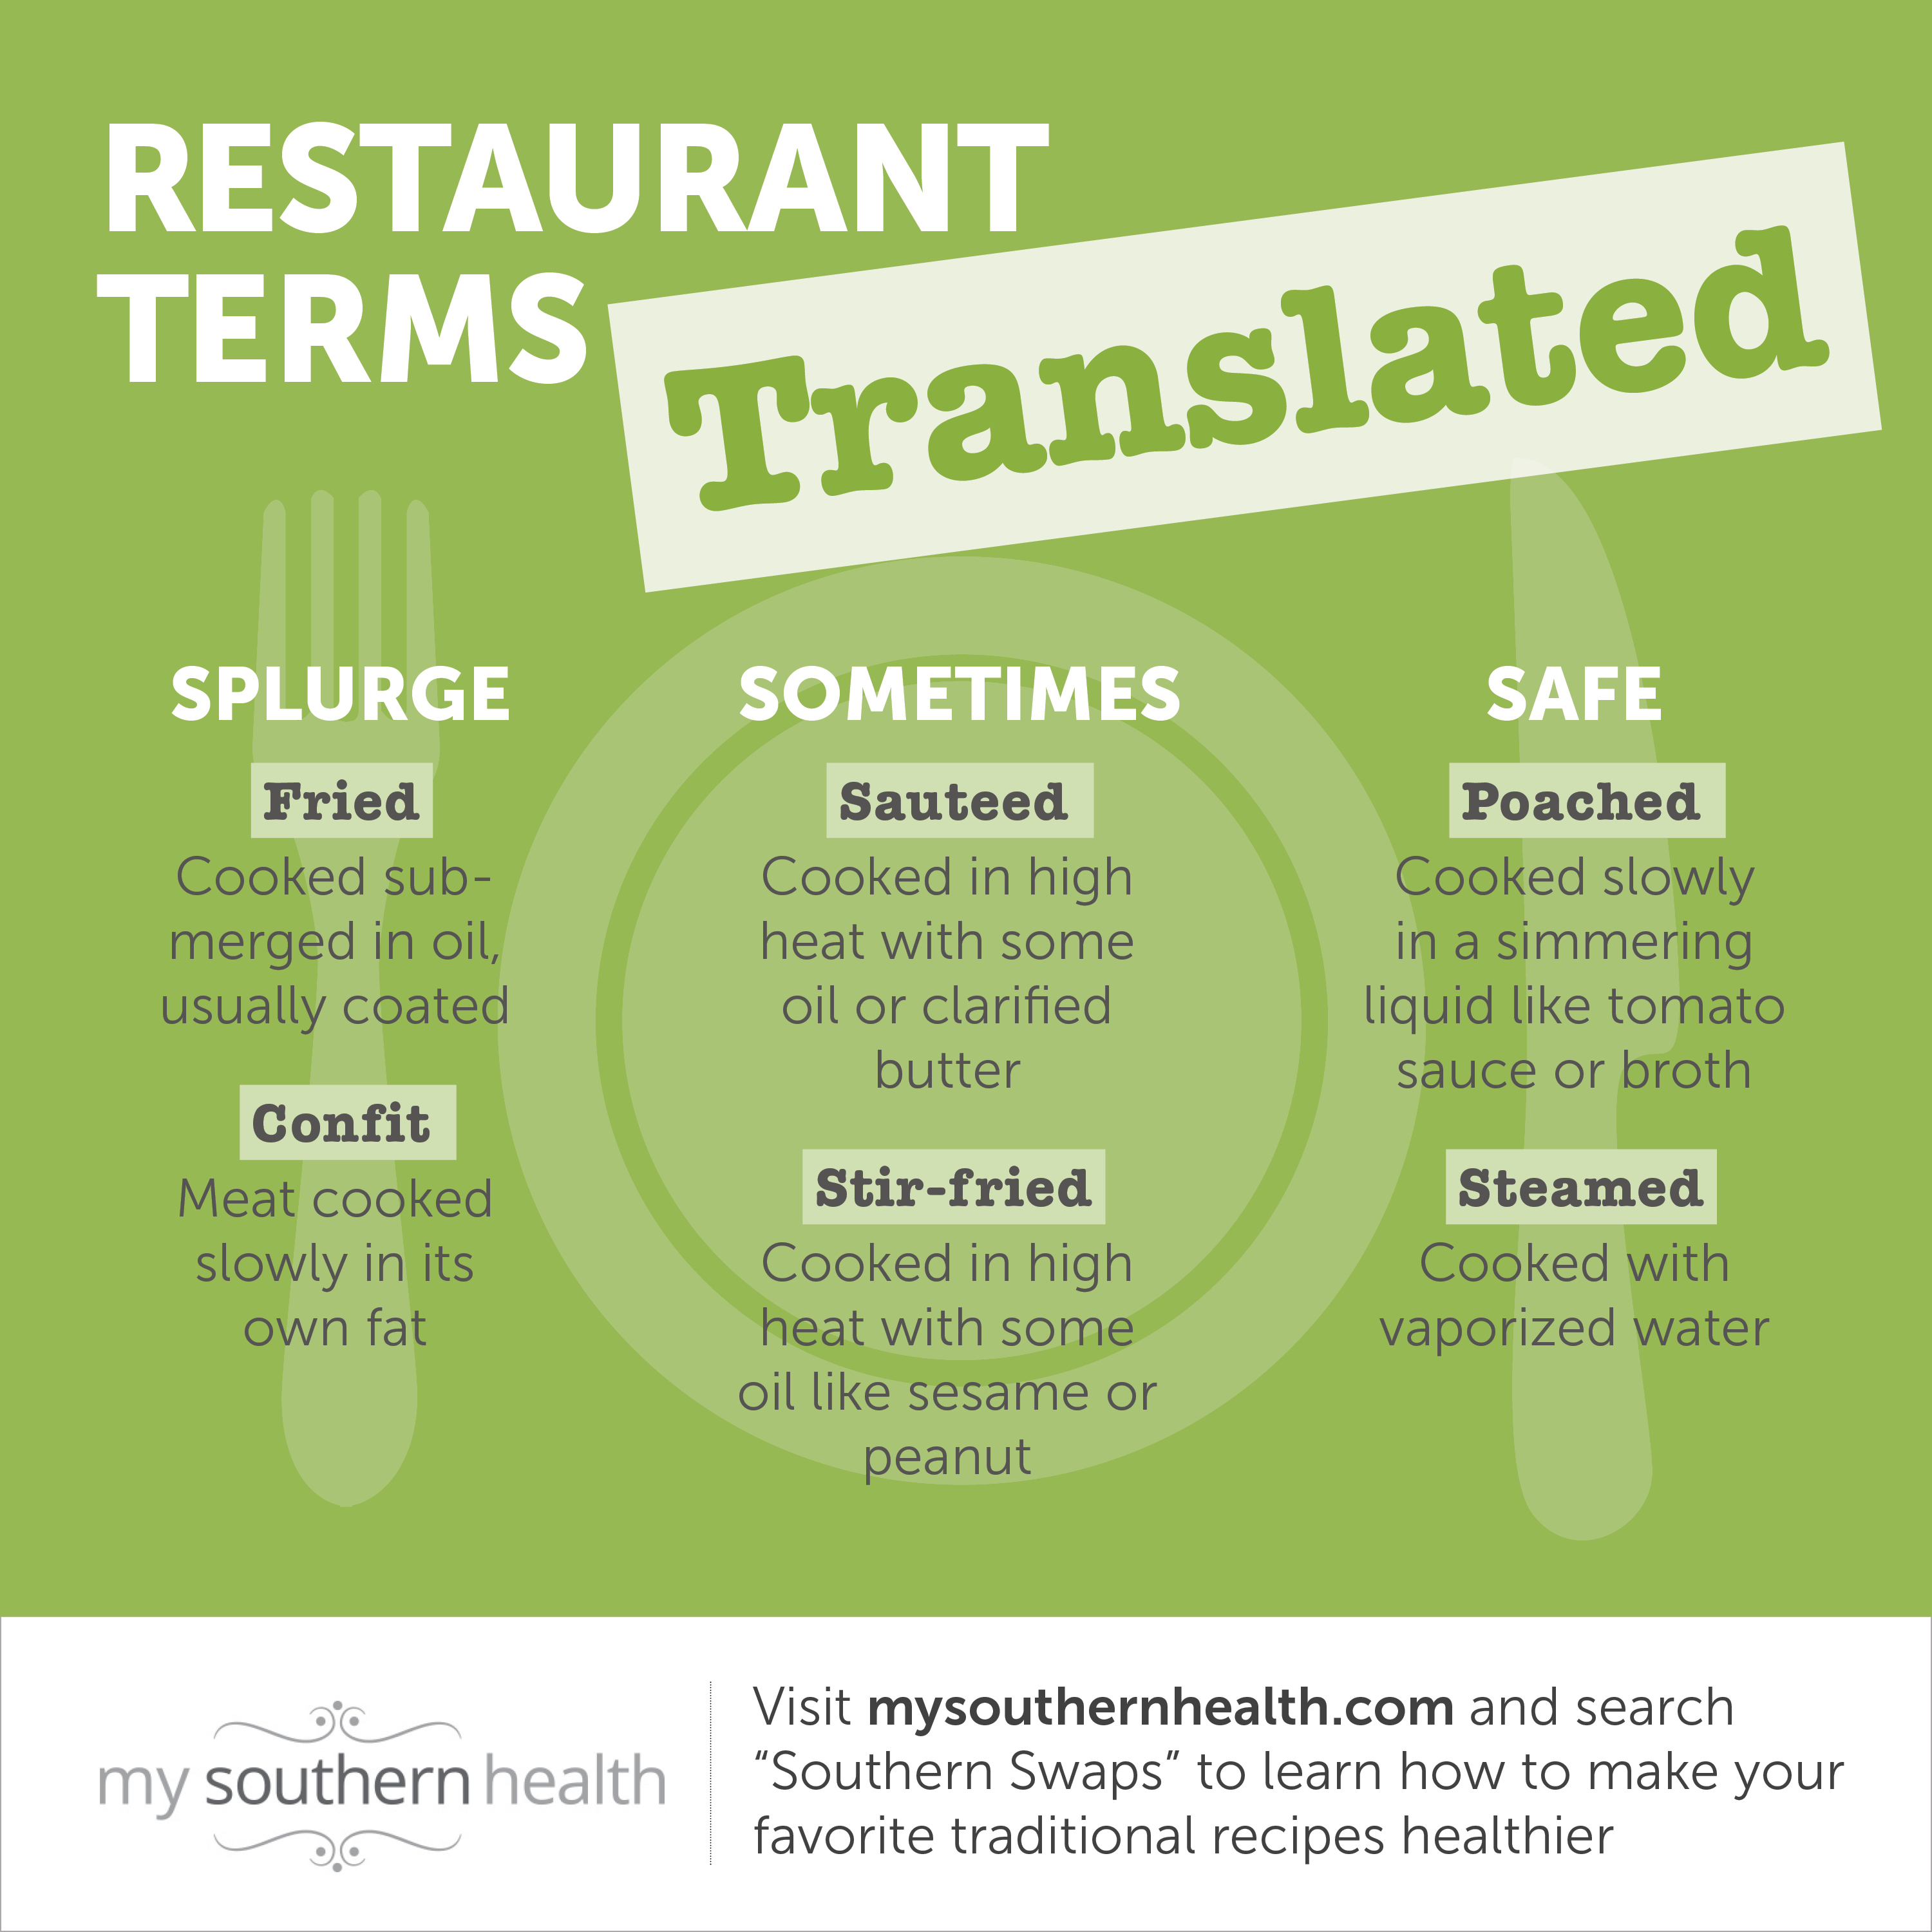 Restaurant Terms